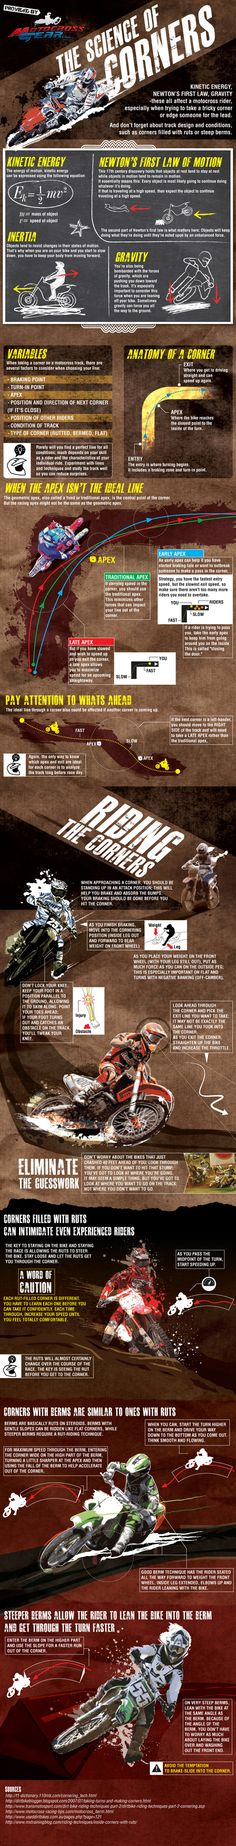 Choosing the Right Line - The Science of Corners  Since the beginning of racing, riders have been faced with many choices on the track. The fastest rider is often the one who chooses the best lines on